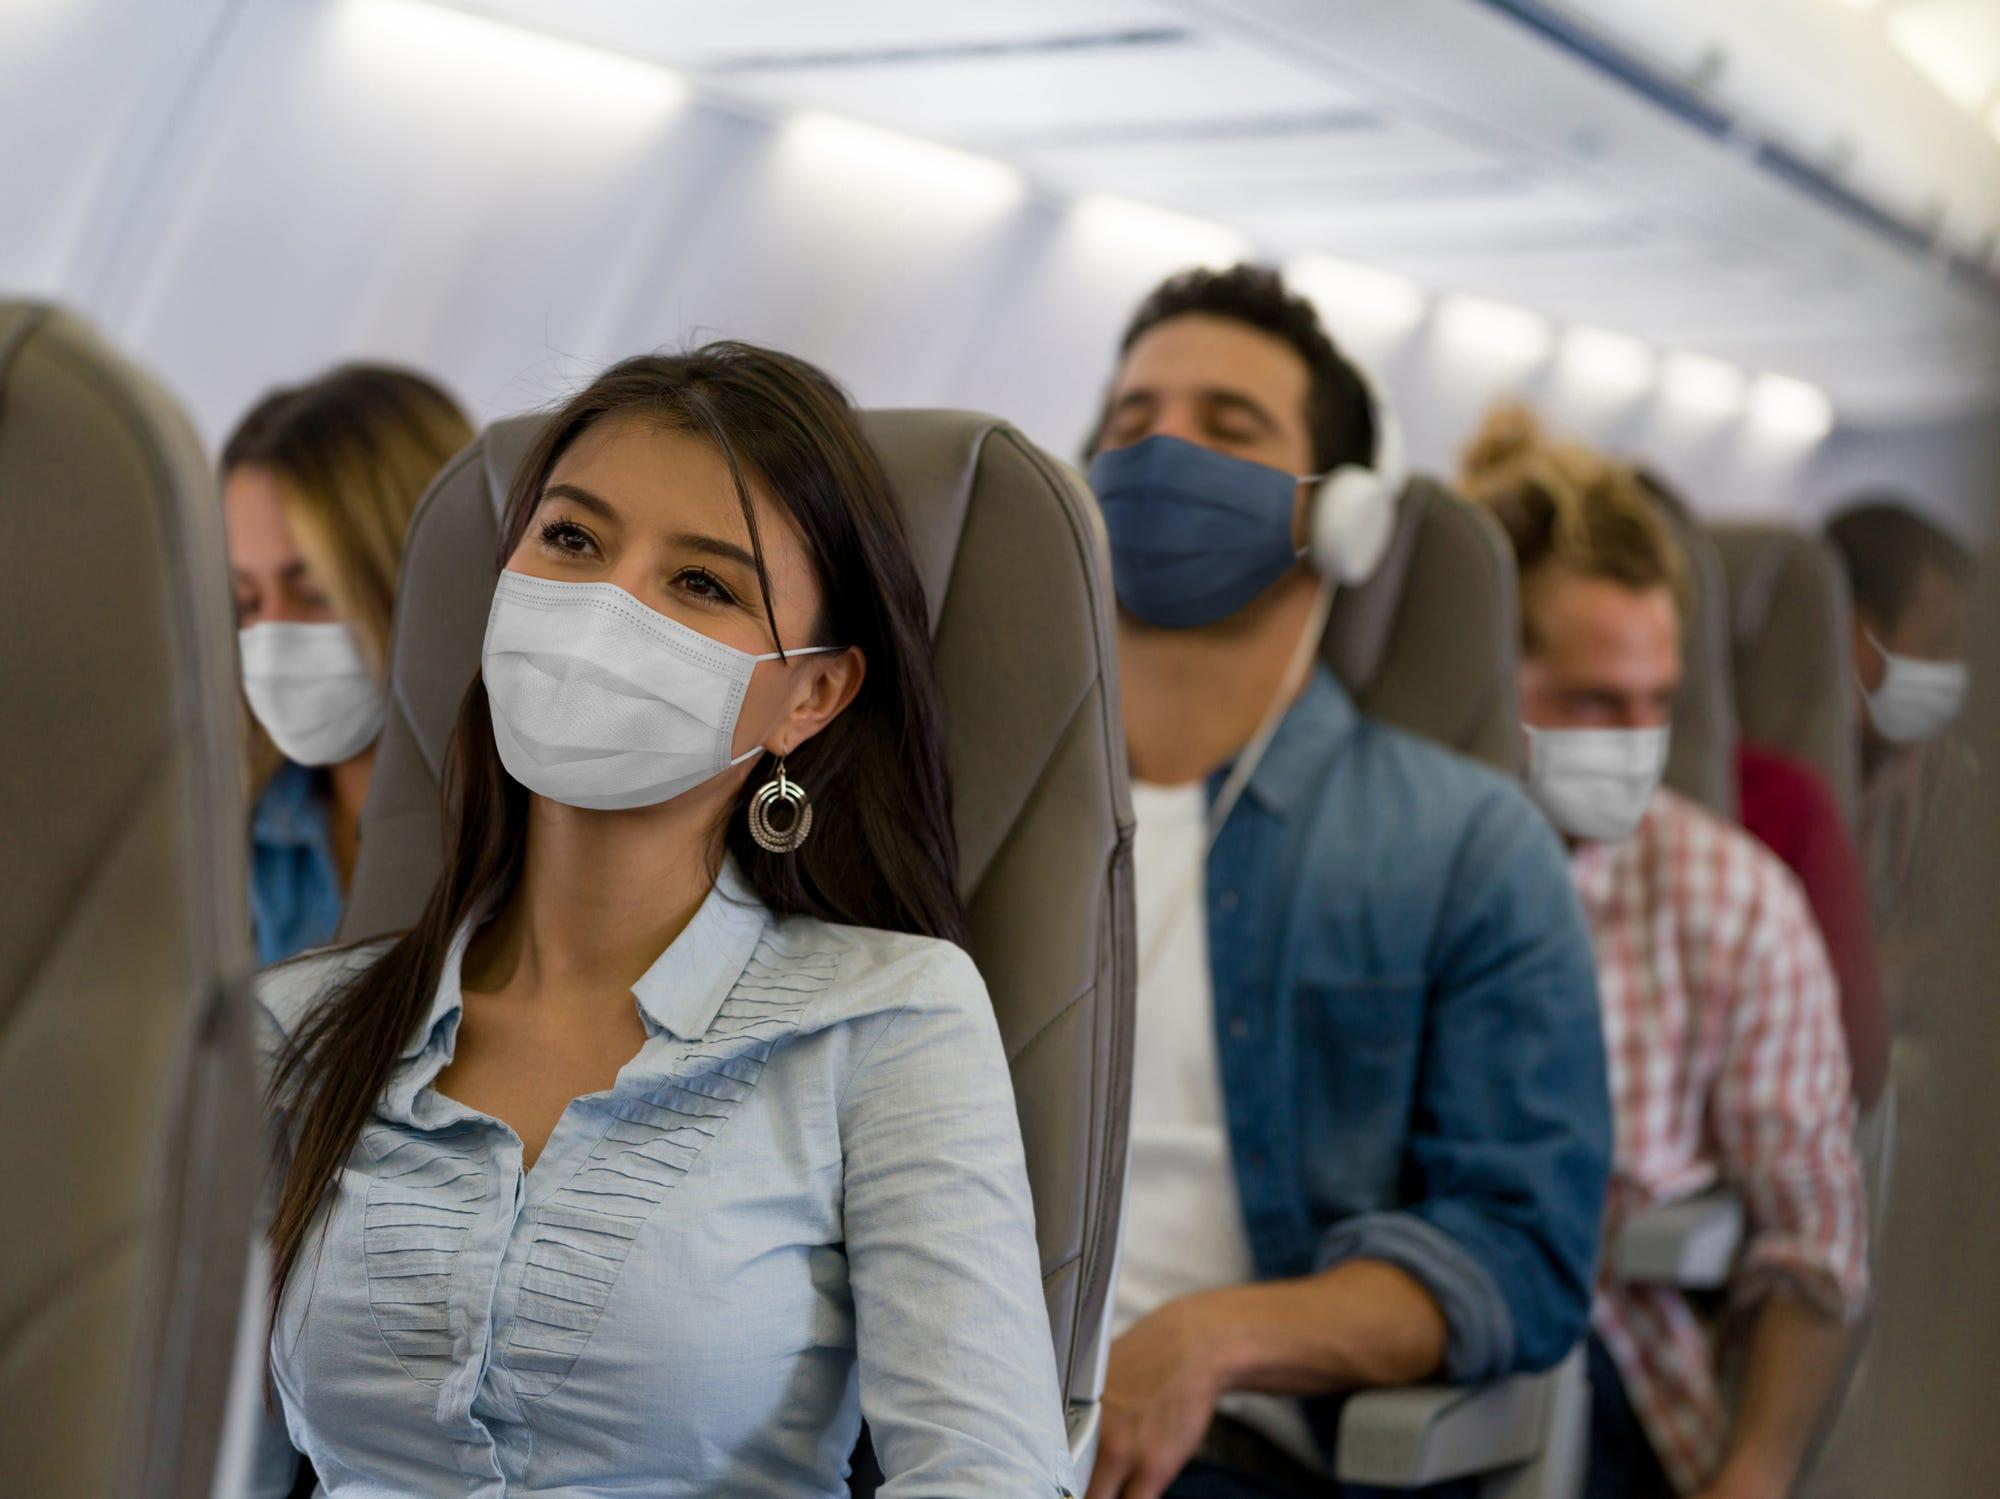 Low risk or dicey? Two new reports paint different pictures of COVID-19 danger while flying